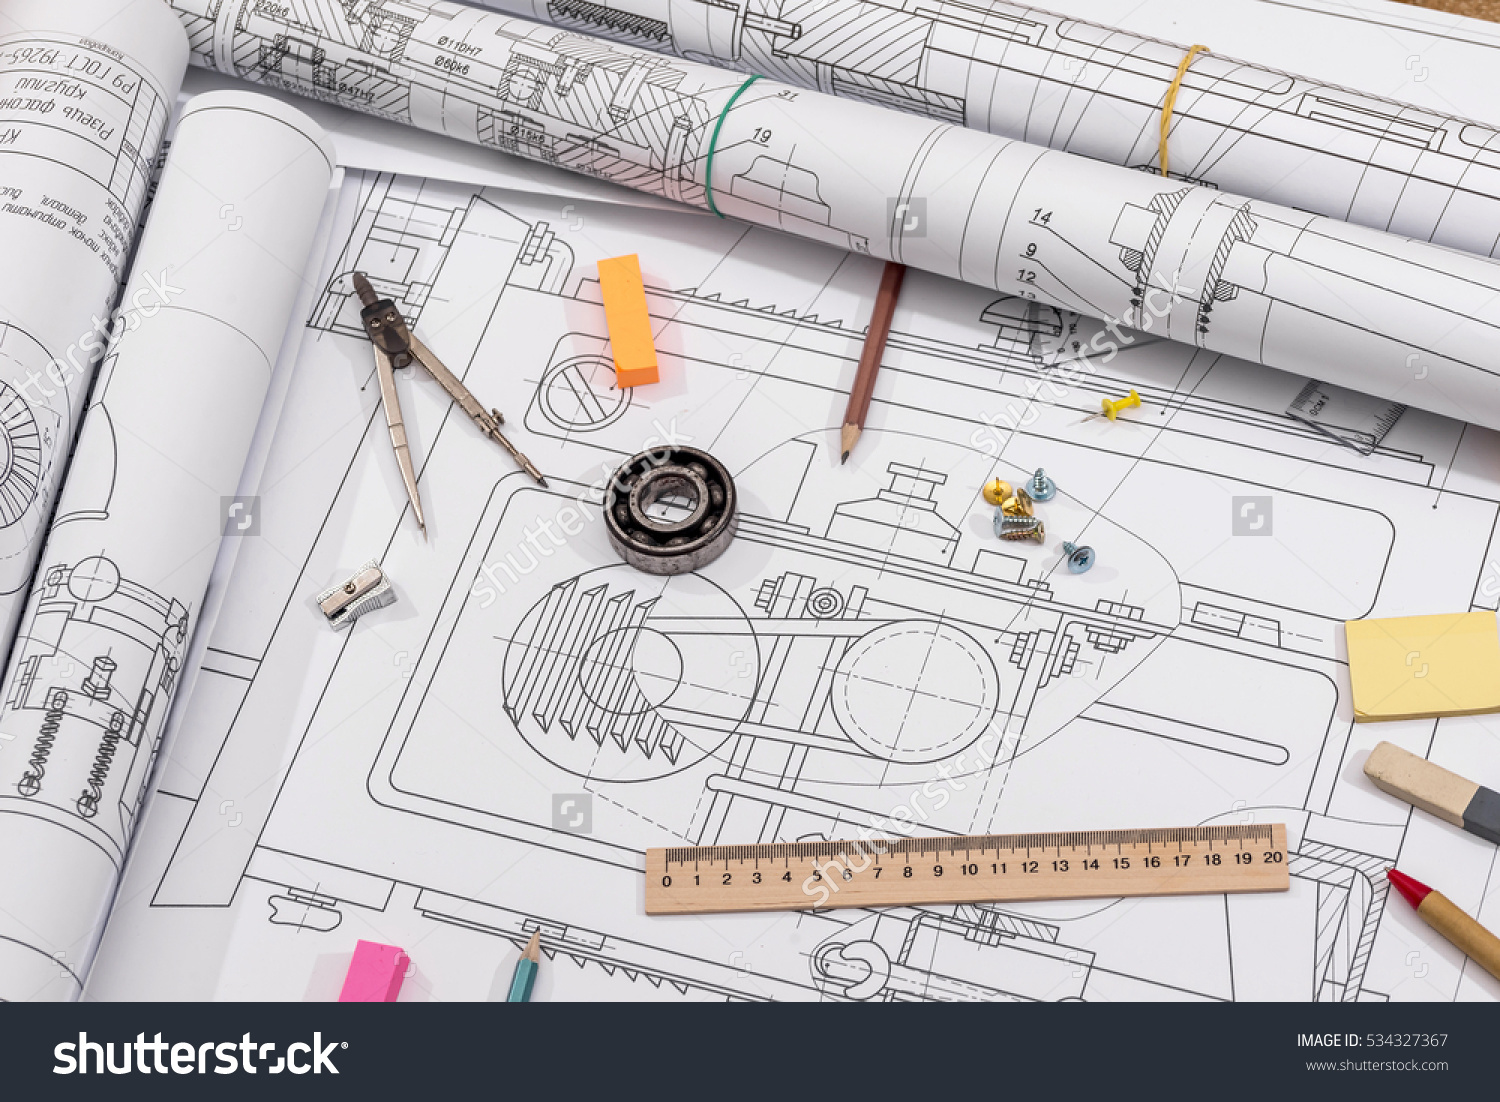 stock-photo-workplace-technical-project-drawing-with